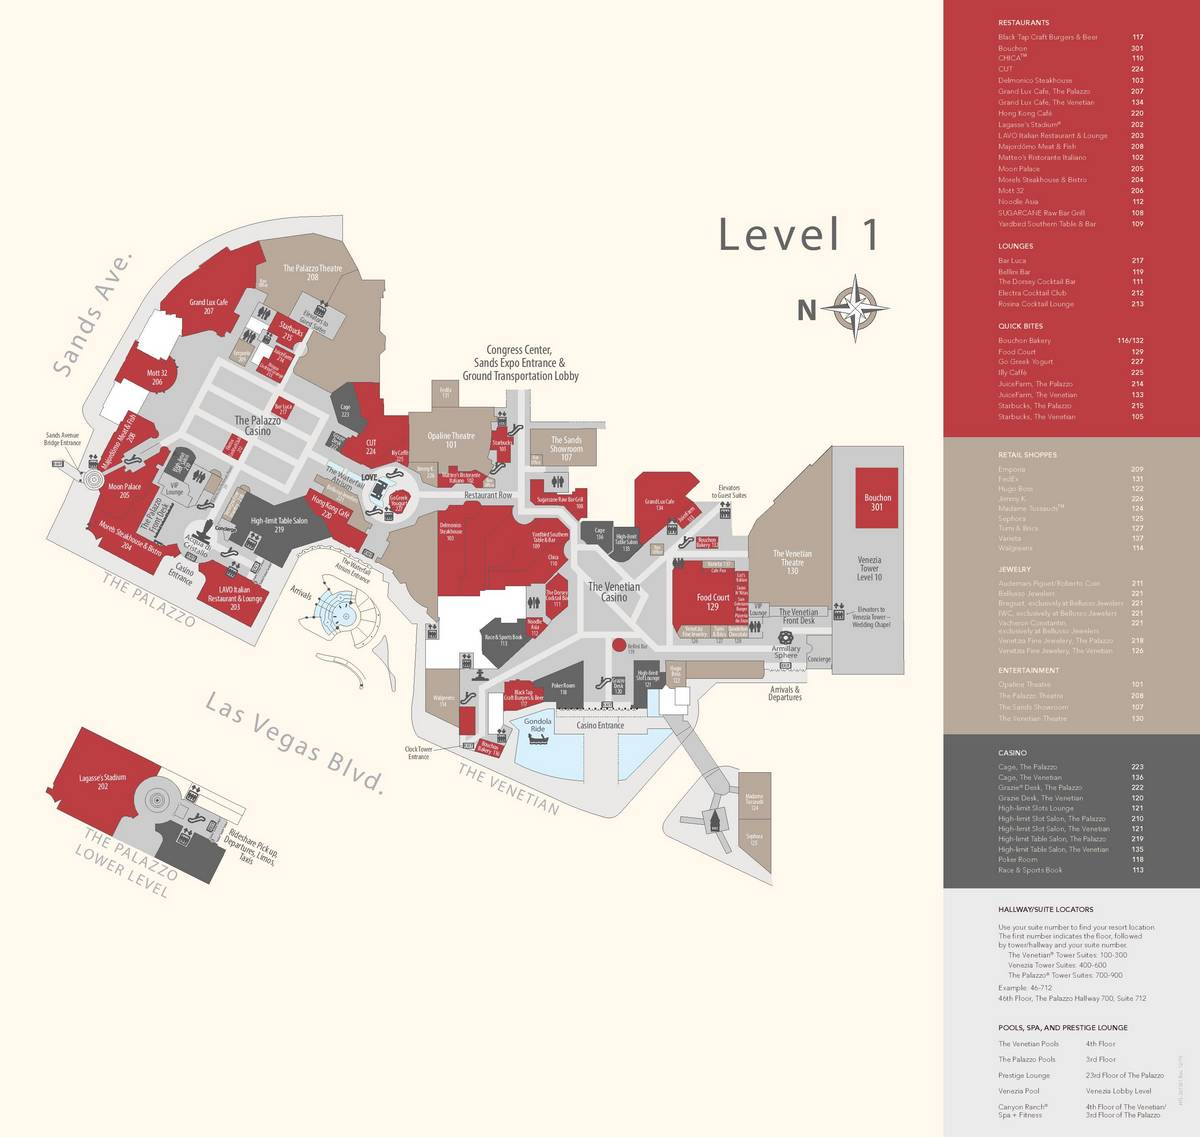 Venetian Las Vegas Property Map Level 1